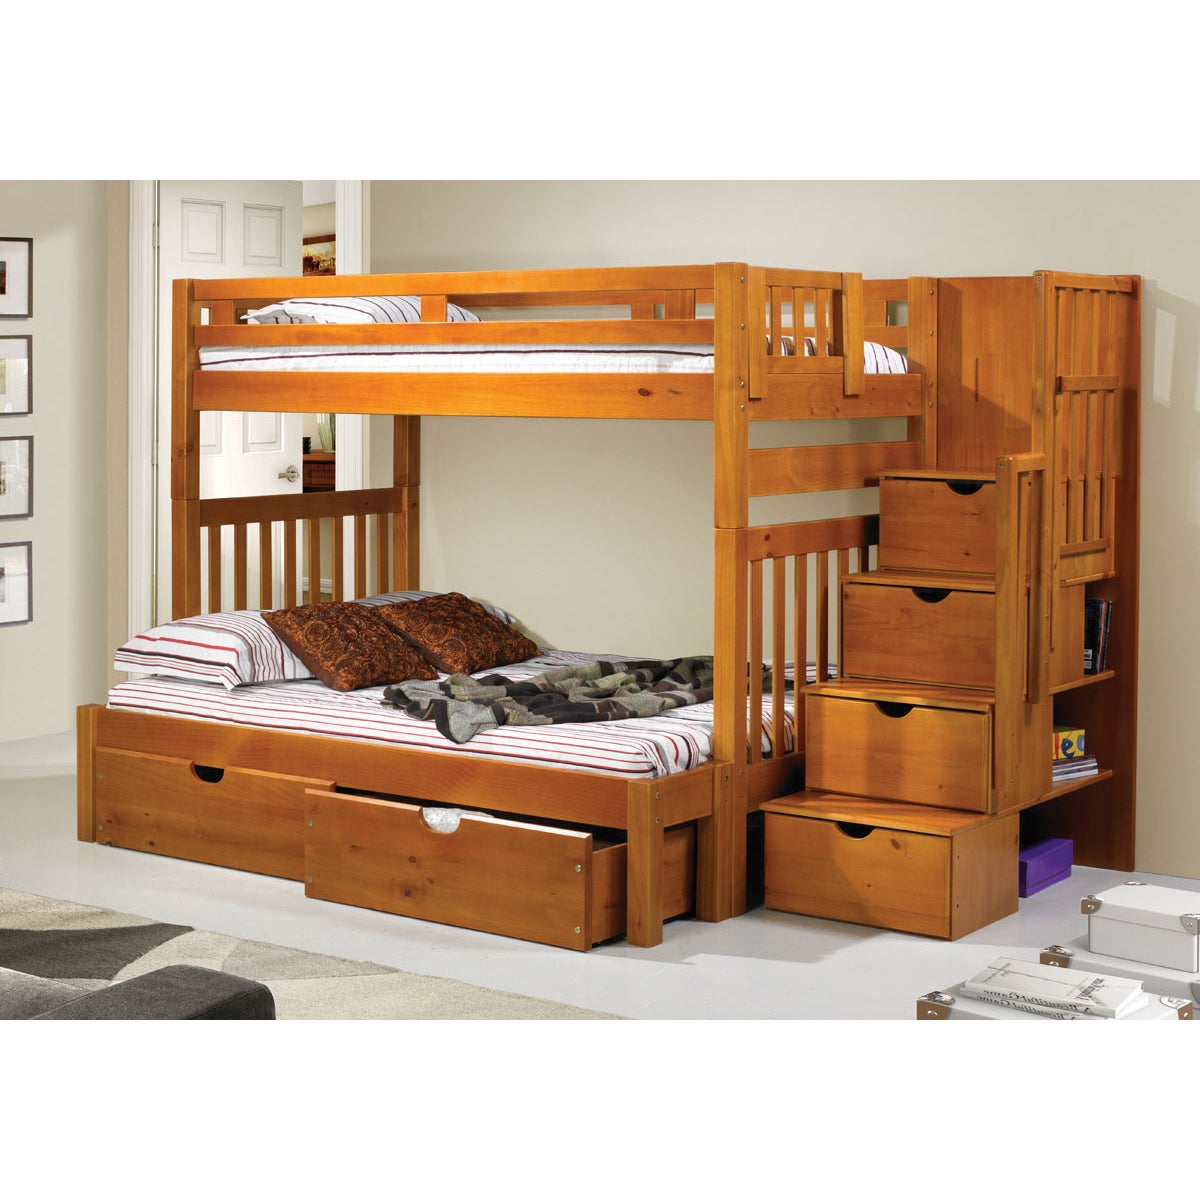 Donco Kids Honey-colored Pine Wood Tall Twin-over-full Bu...